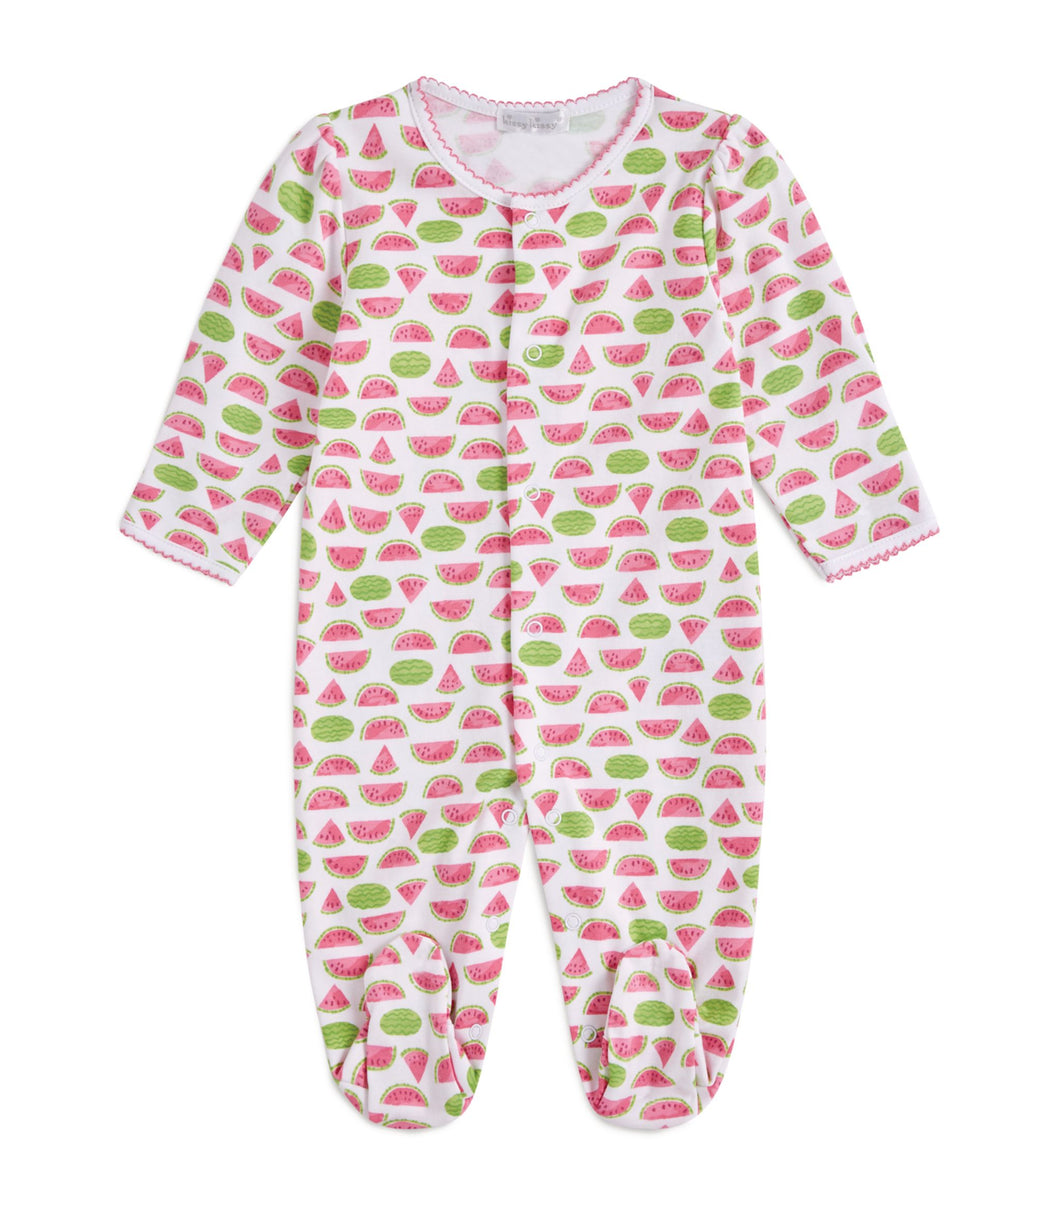 Whimsical Watermelons Print Footie